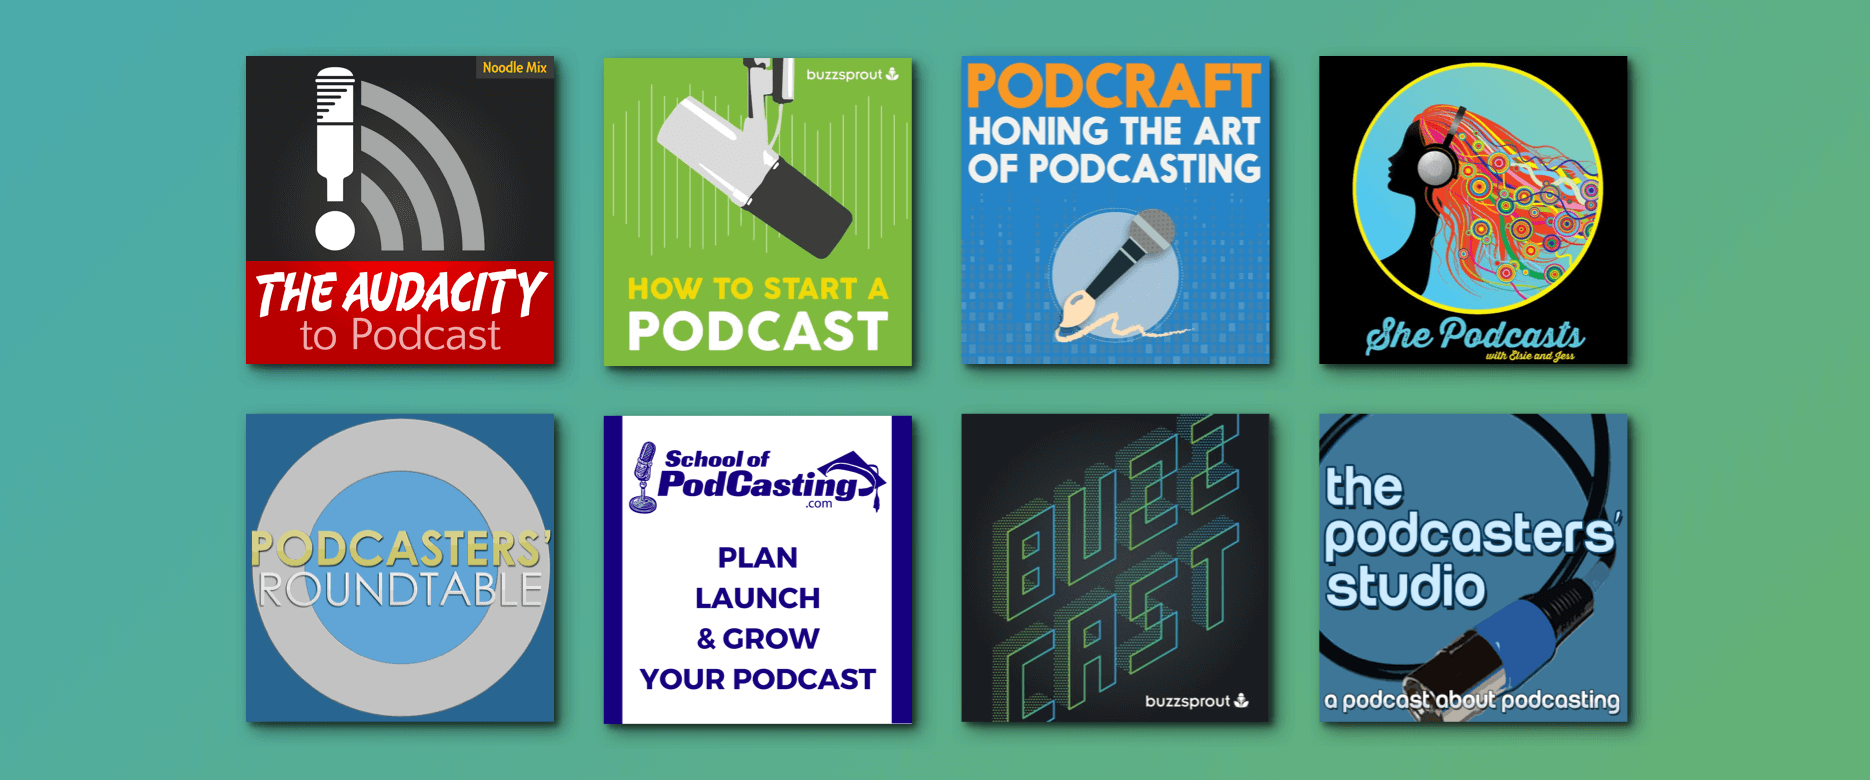 podcasts-for-podcasters